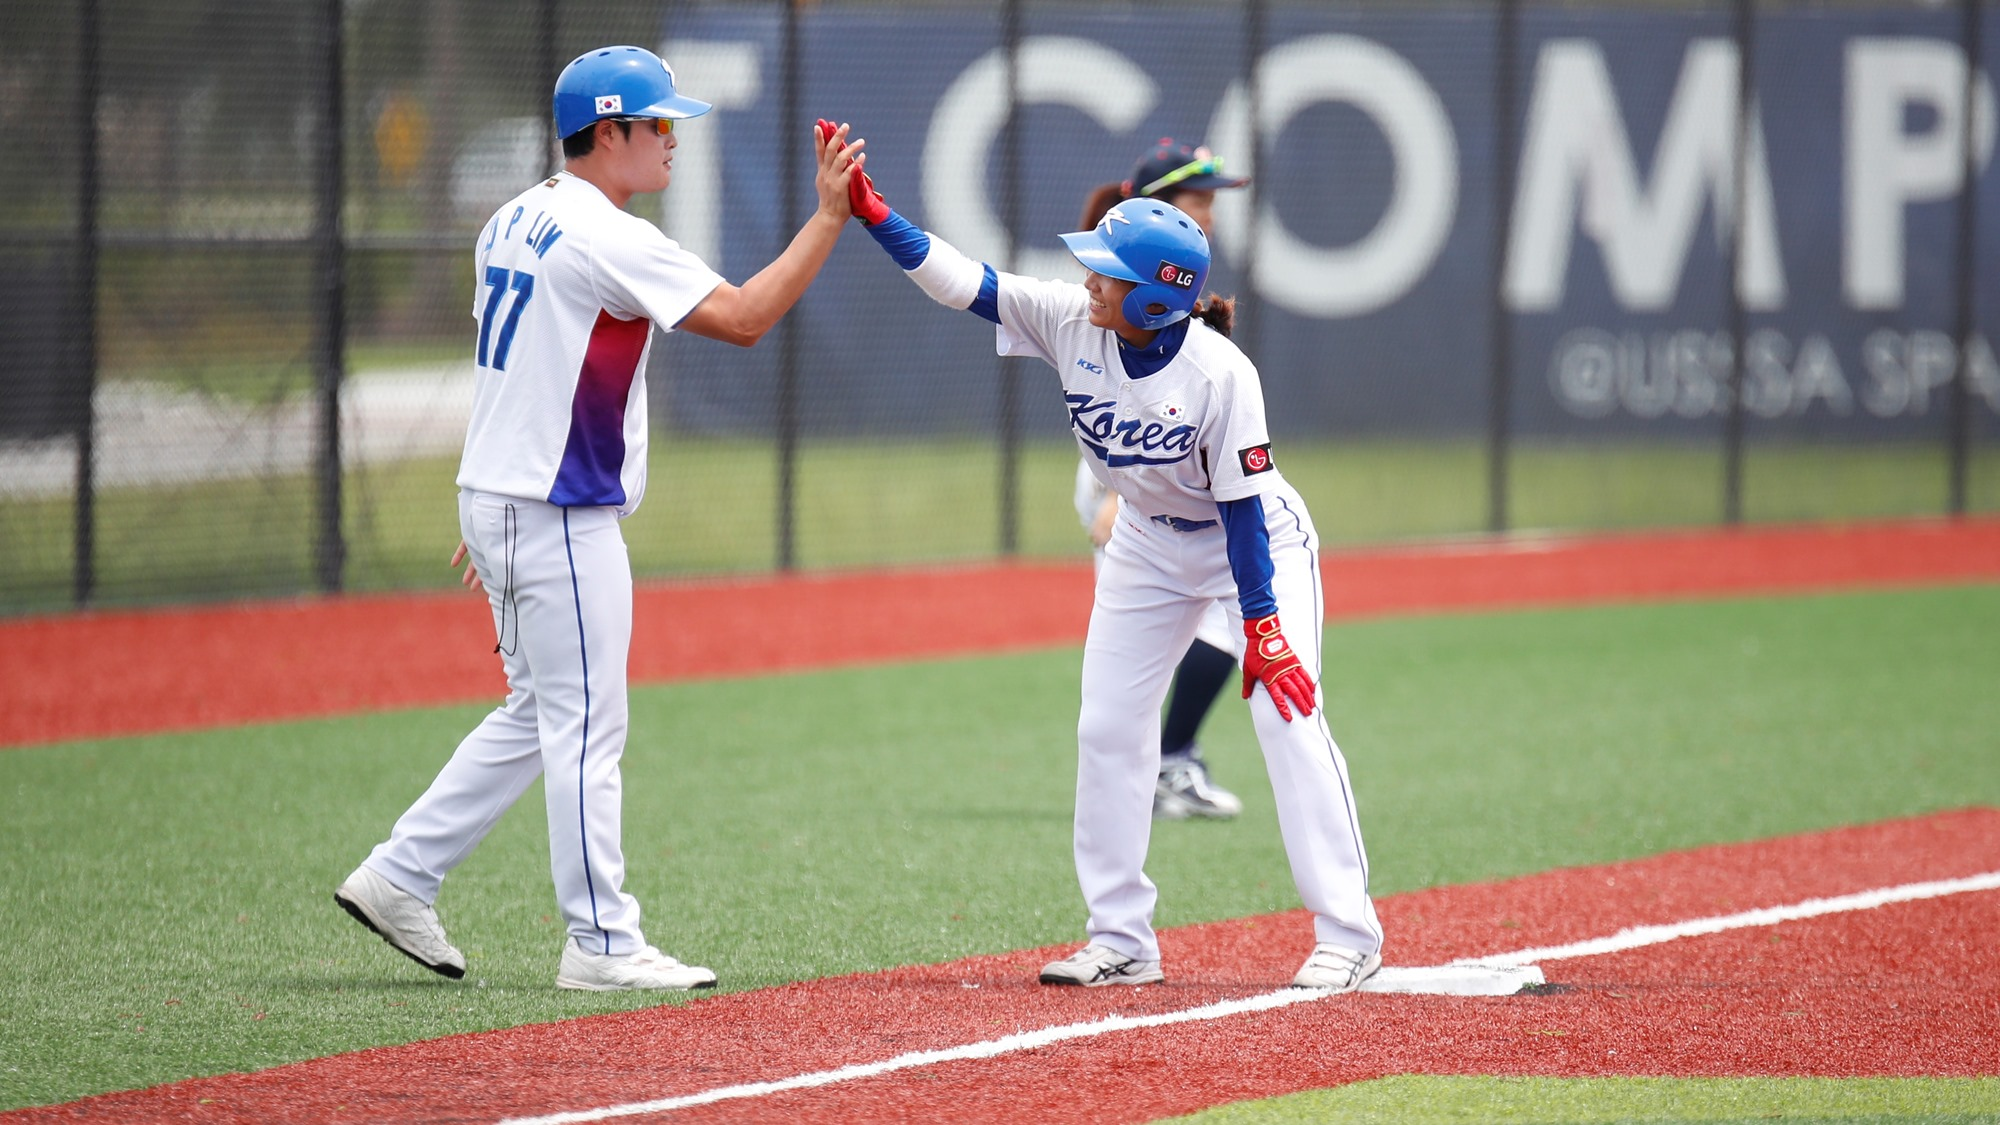 Korea's third base coach congratulating his player